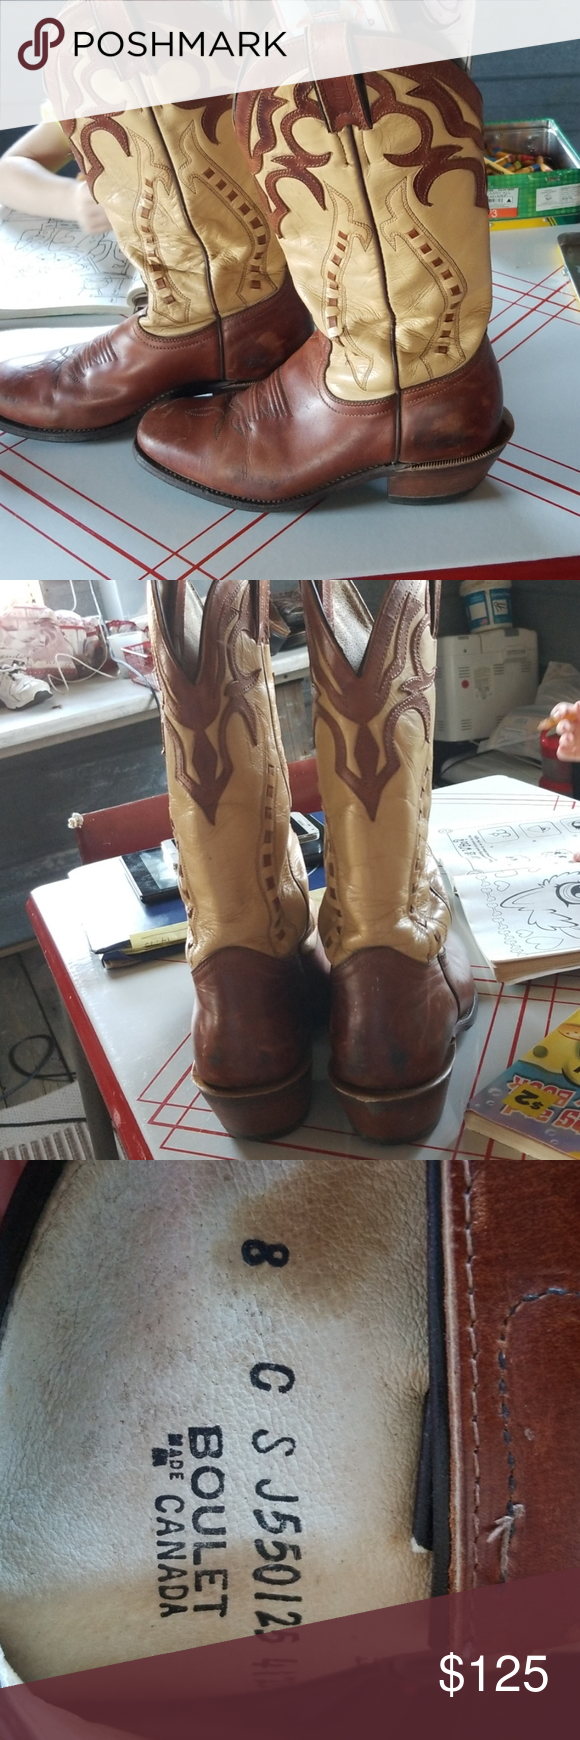 Boulet Boots size 8 Very nice boots.  I've worn them riding a few times. They ar…